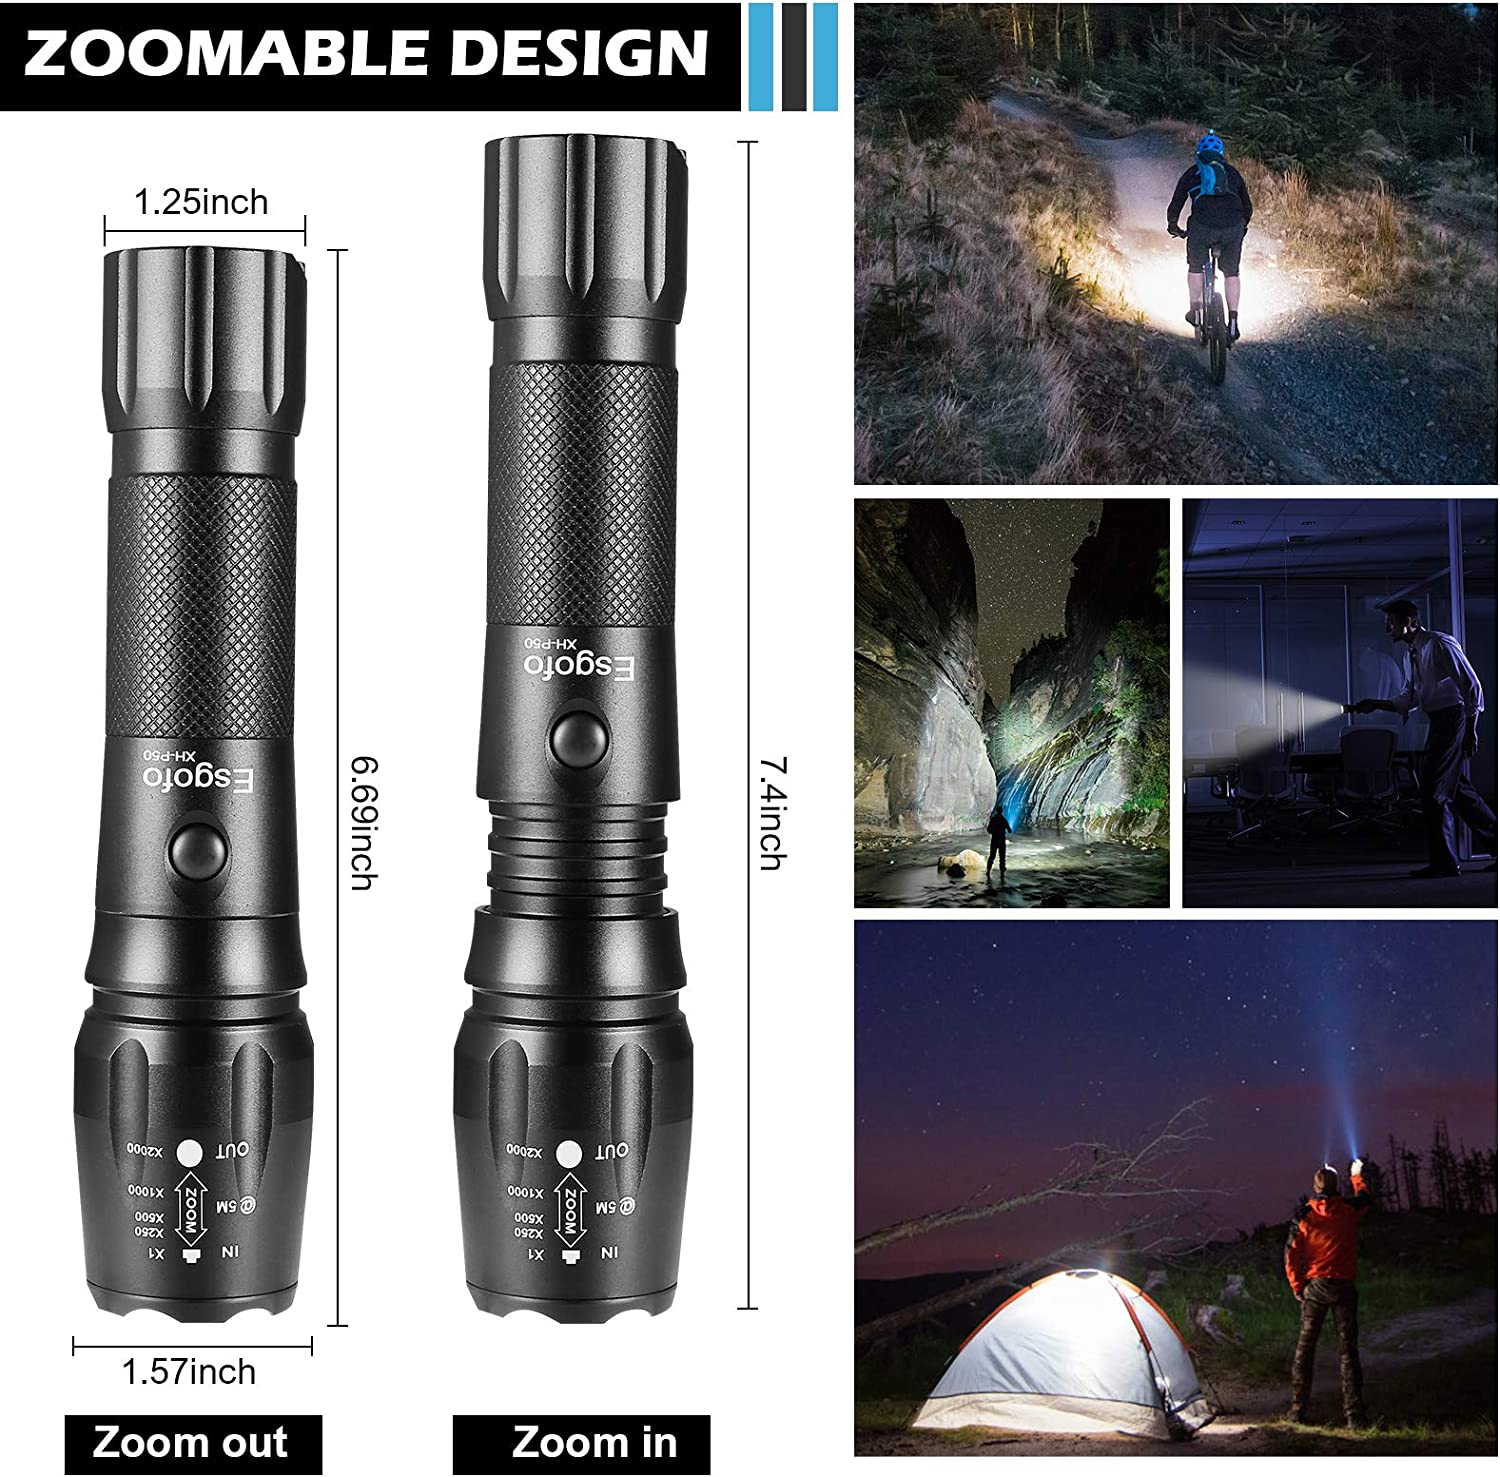 Rechargeable LED Torches Tactical Torch High Lumens Esgofo P50 Powerful Flash Lights High Power Big Gear Flashlights 26650 6000mAh Battery Charger USB Cable Box Emergency Camping Hiking Accessories